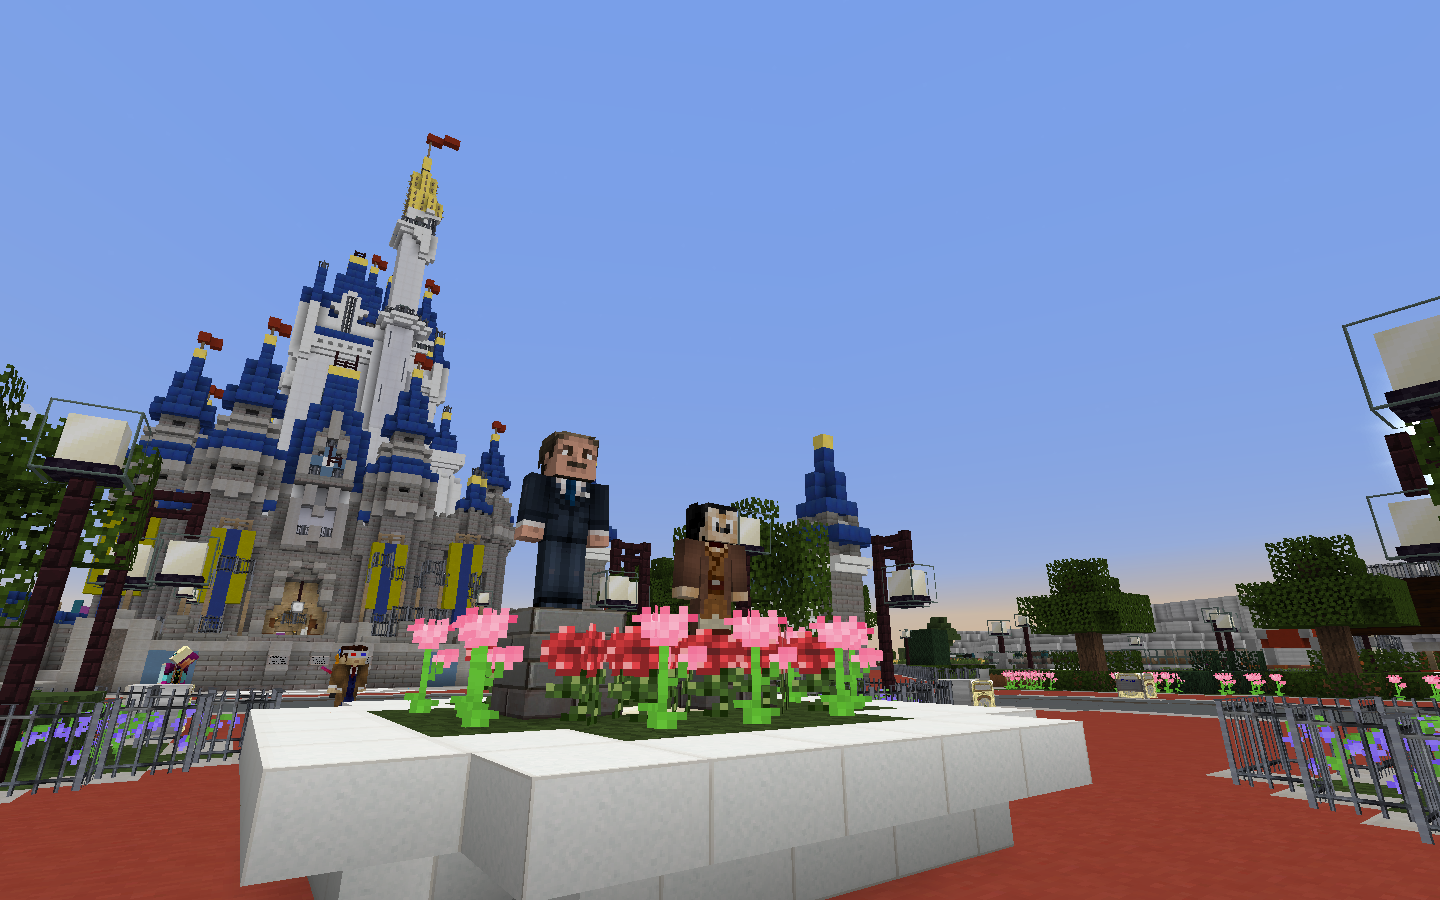 Virtual magic kingdom unofficially reborn on minecraft theme partners statue complete with jedi mickey for star wars weekends gumiabroncs Image collections